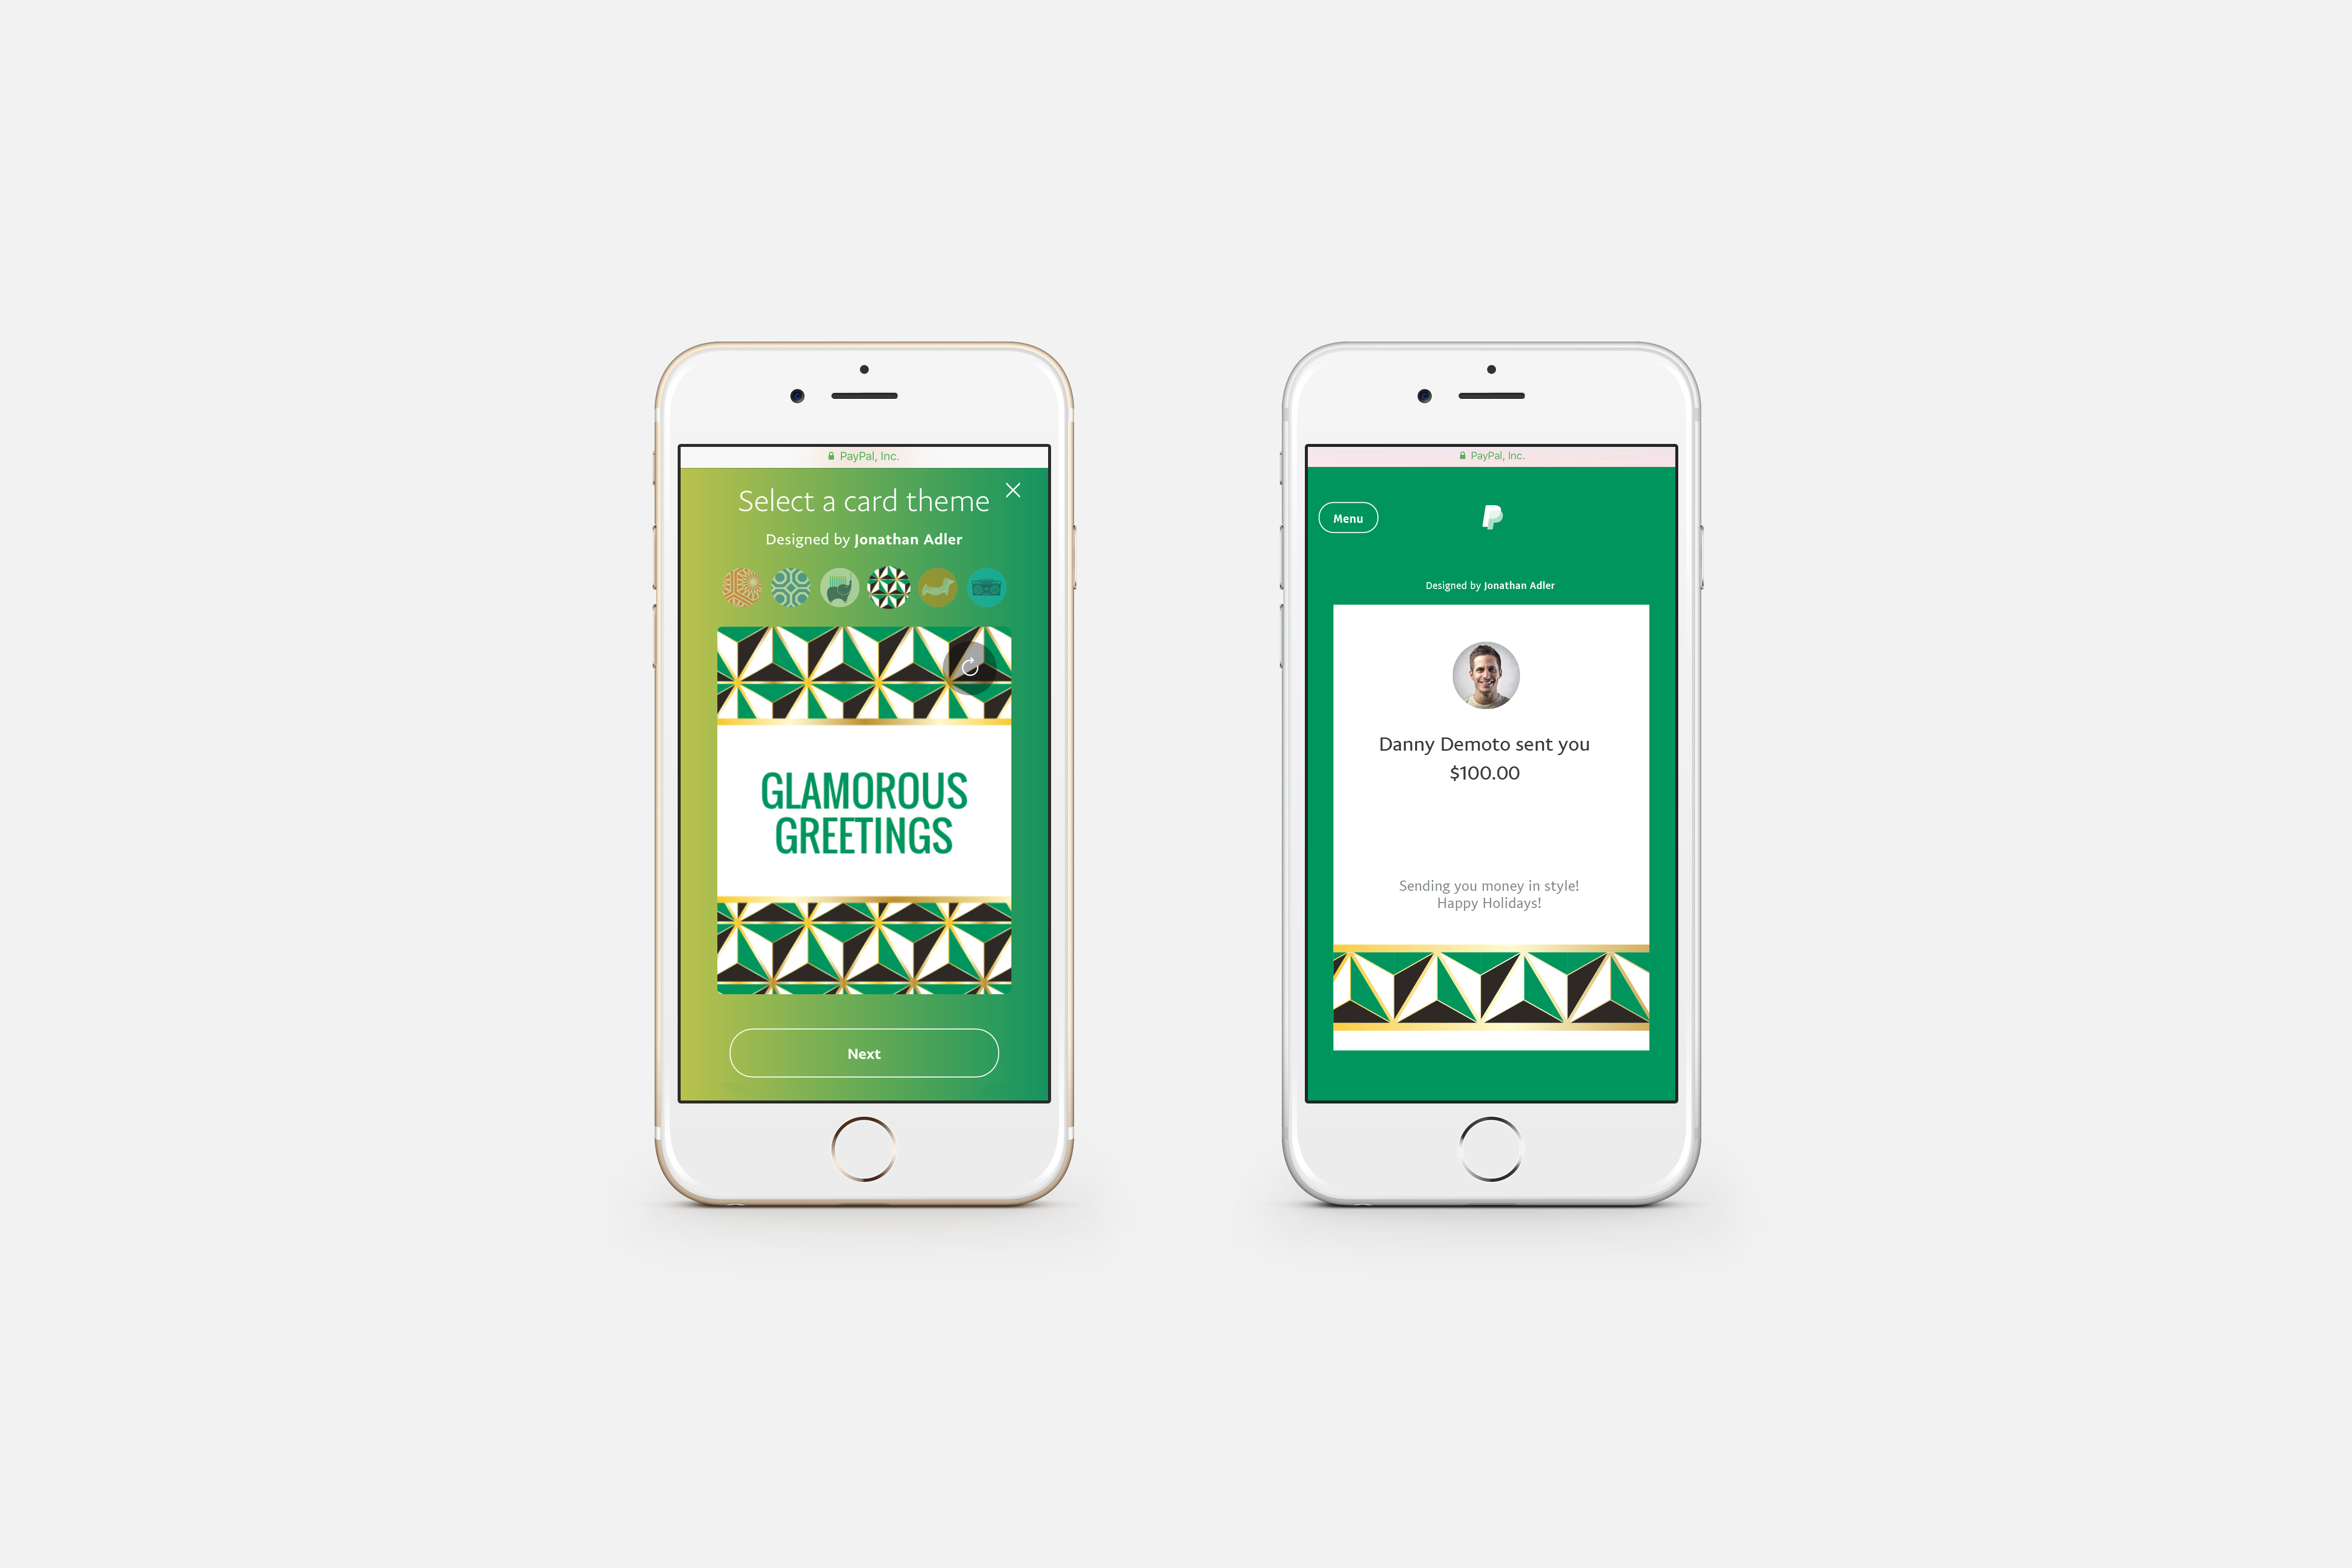 Send Money in Style with PayPal and Jonathan Adler This Holiday ...